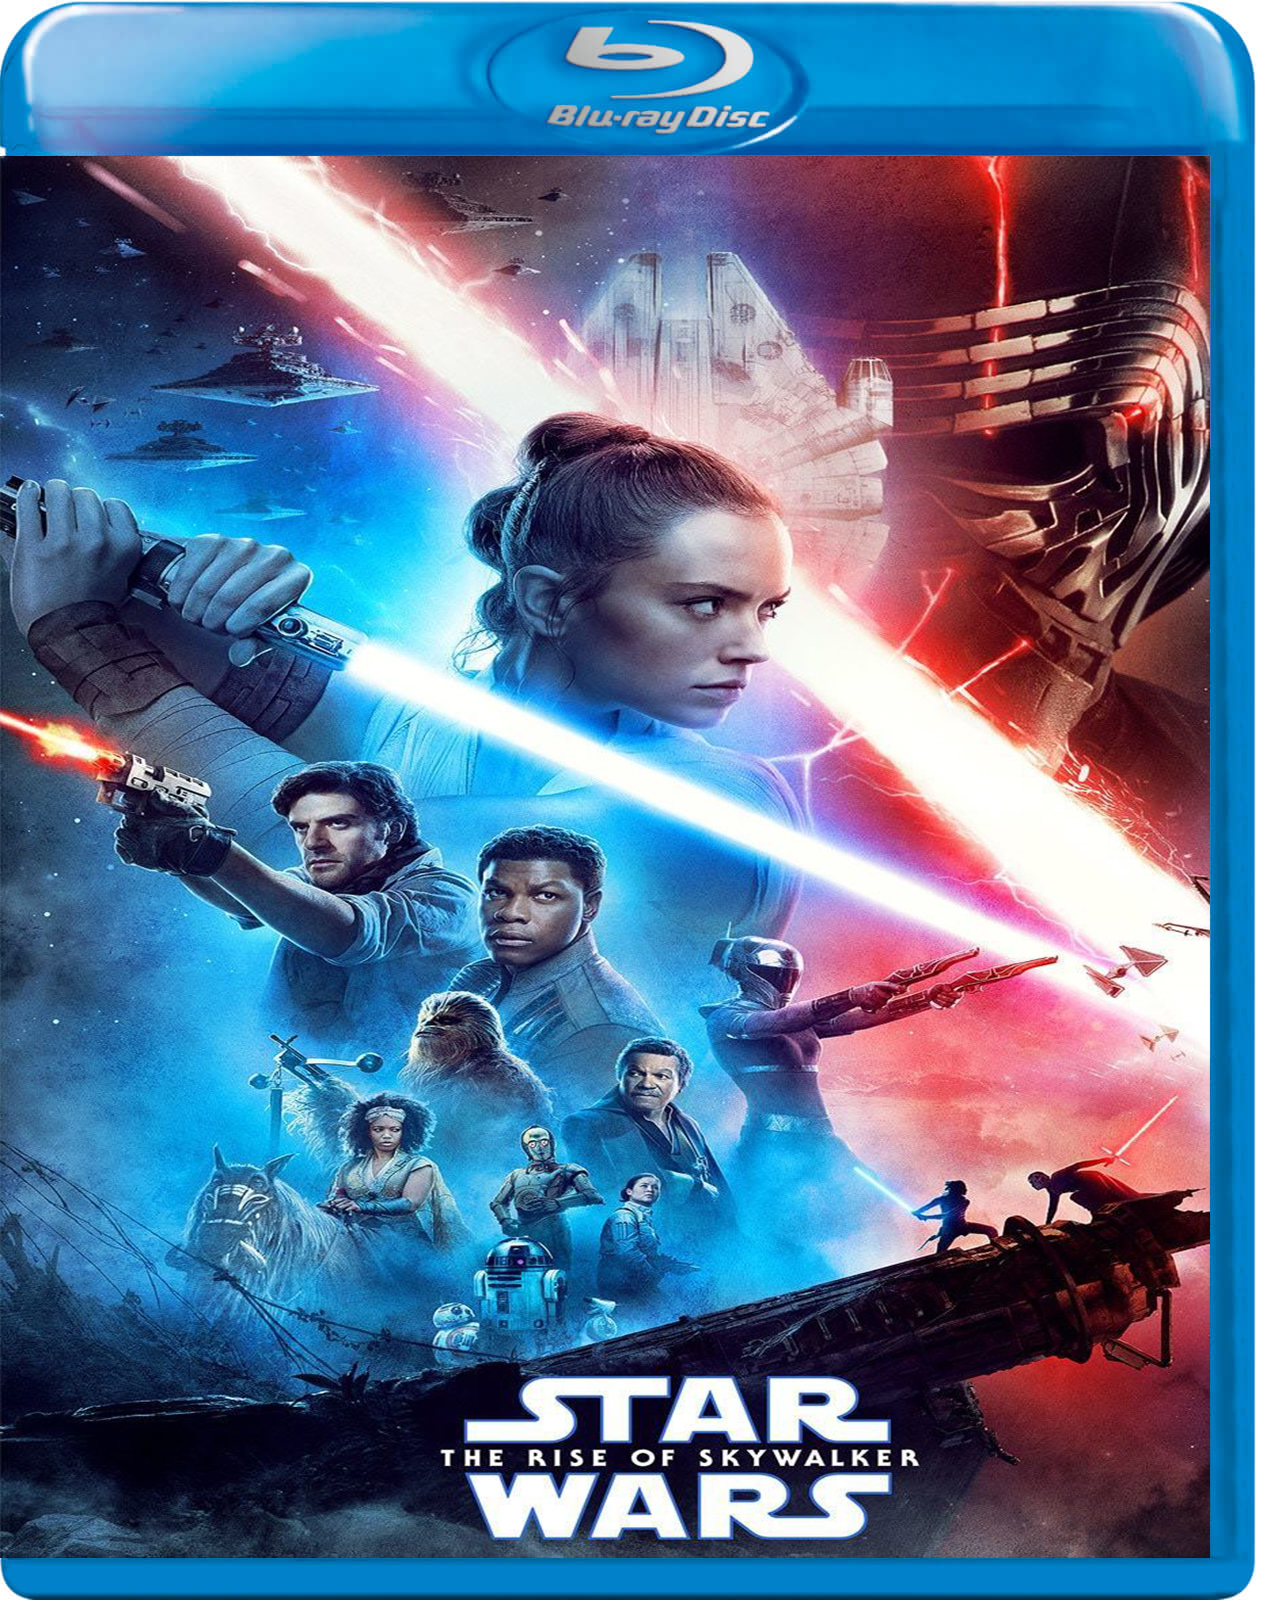 Star Wars: The Rise of Skywalker [2020] [BD25] [Latino] [Movie + Bonus]